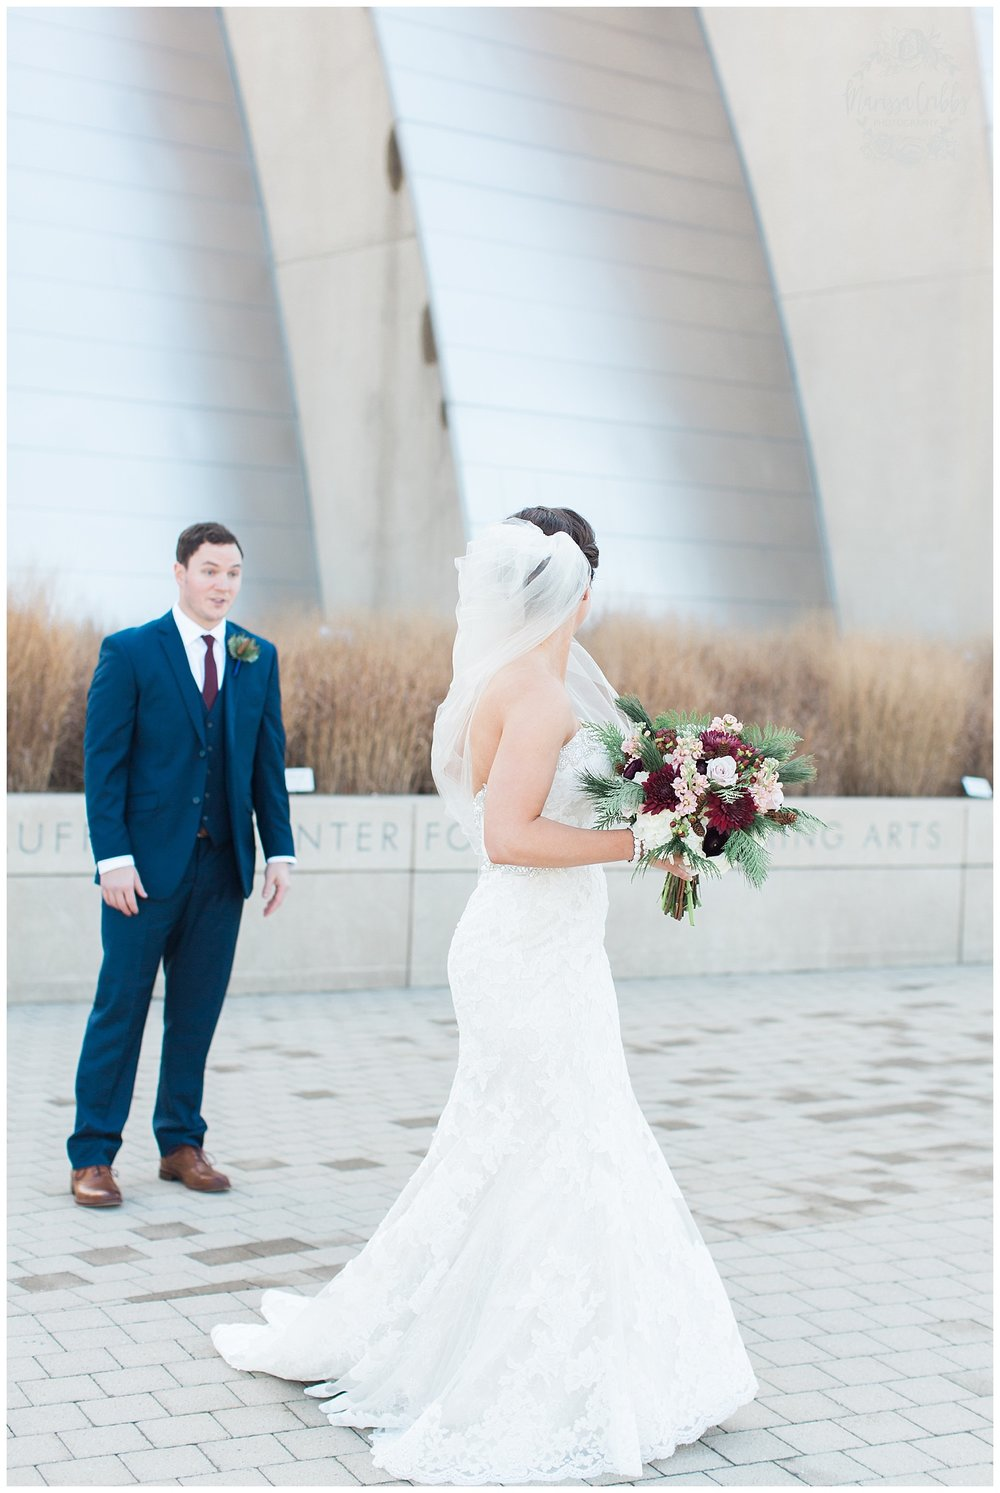 Kelsey & Cory | The Venue at Willow Creek Wedding | Kauffman Performing Arts | Marissa Cribbs Photography | KC Wedding Photographer_0323.jpg